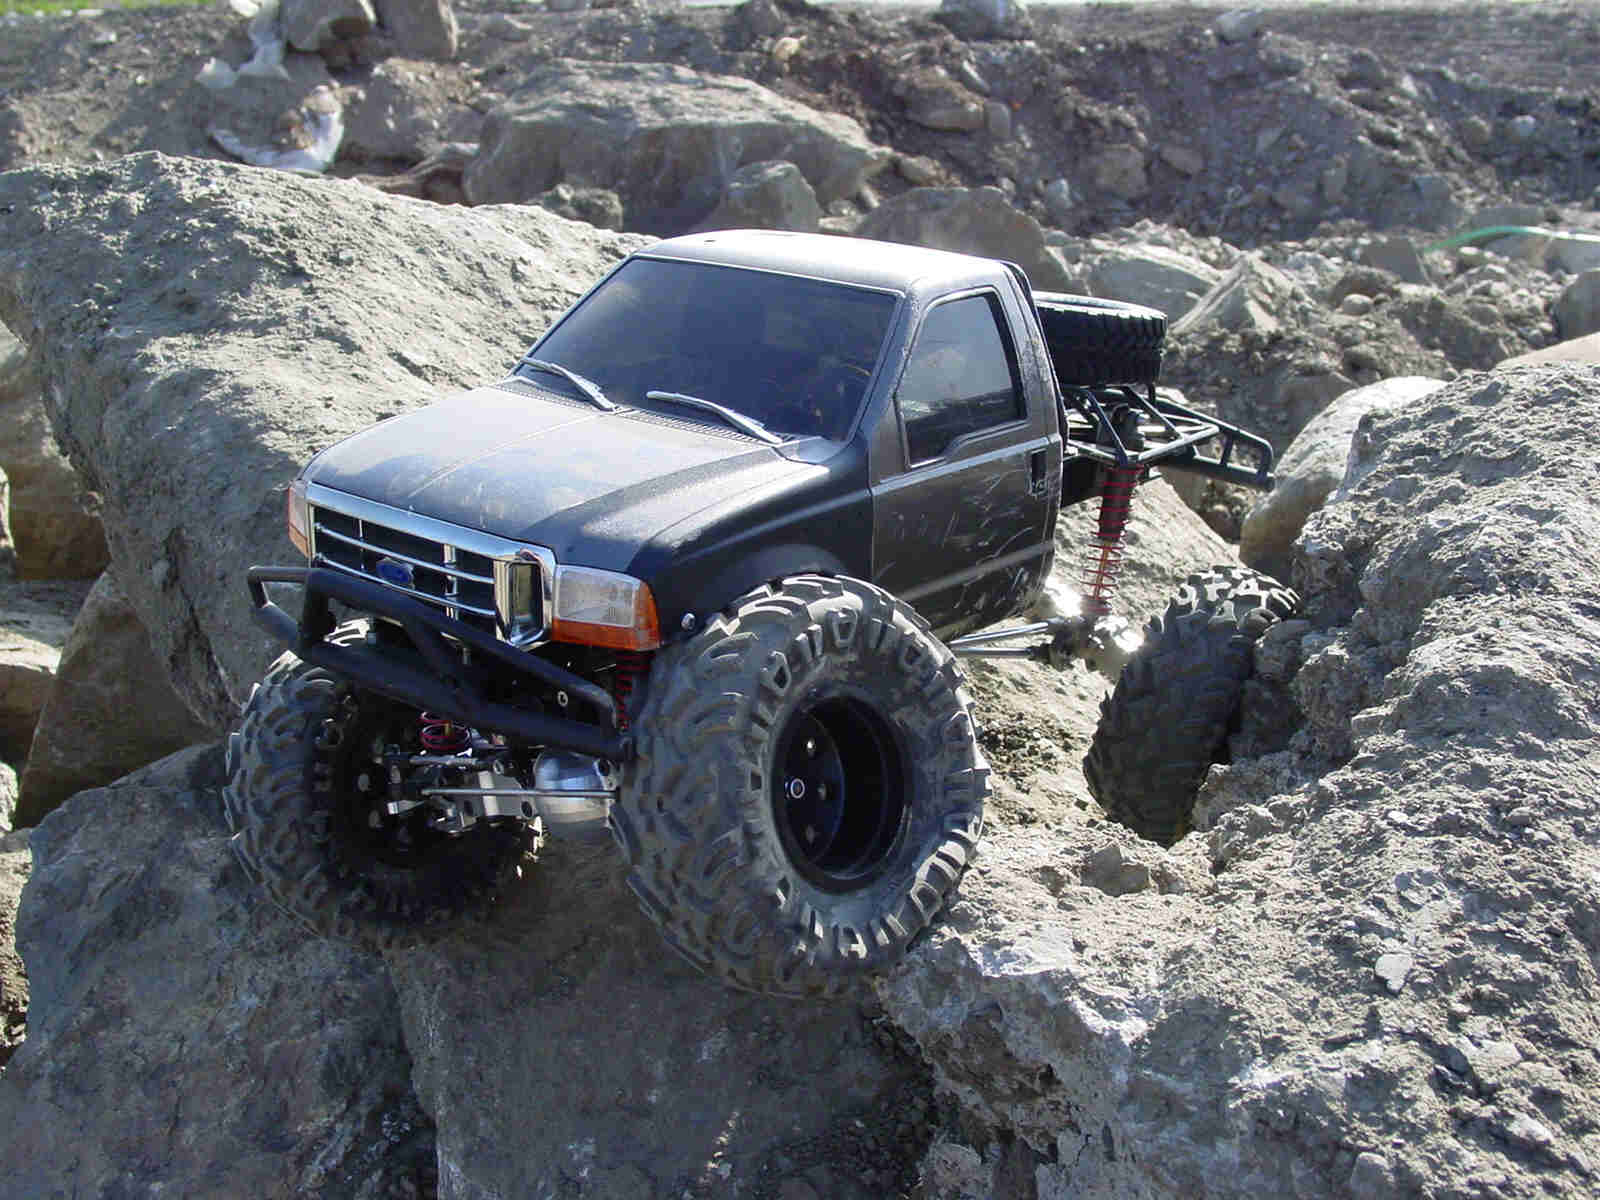 Rock Crawler Wallpaper : Rock crawler wallpaper wallpapersafari